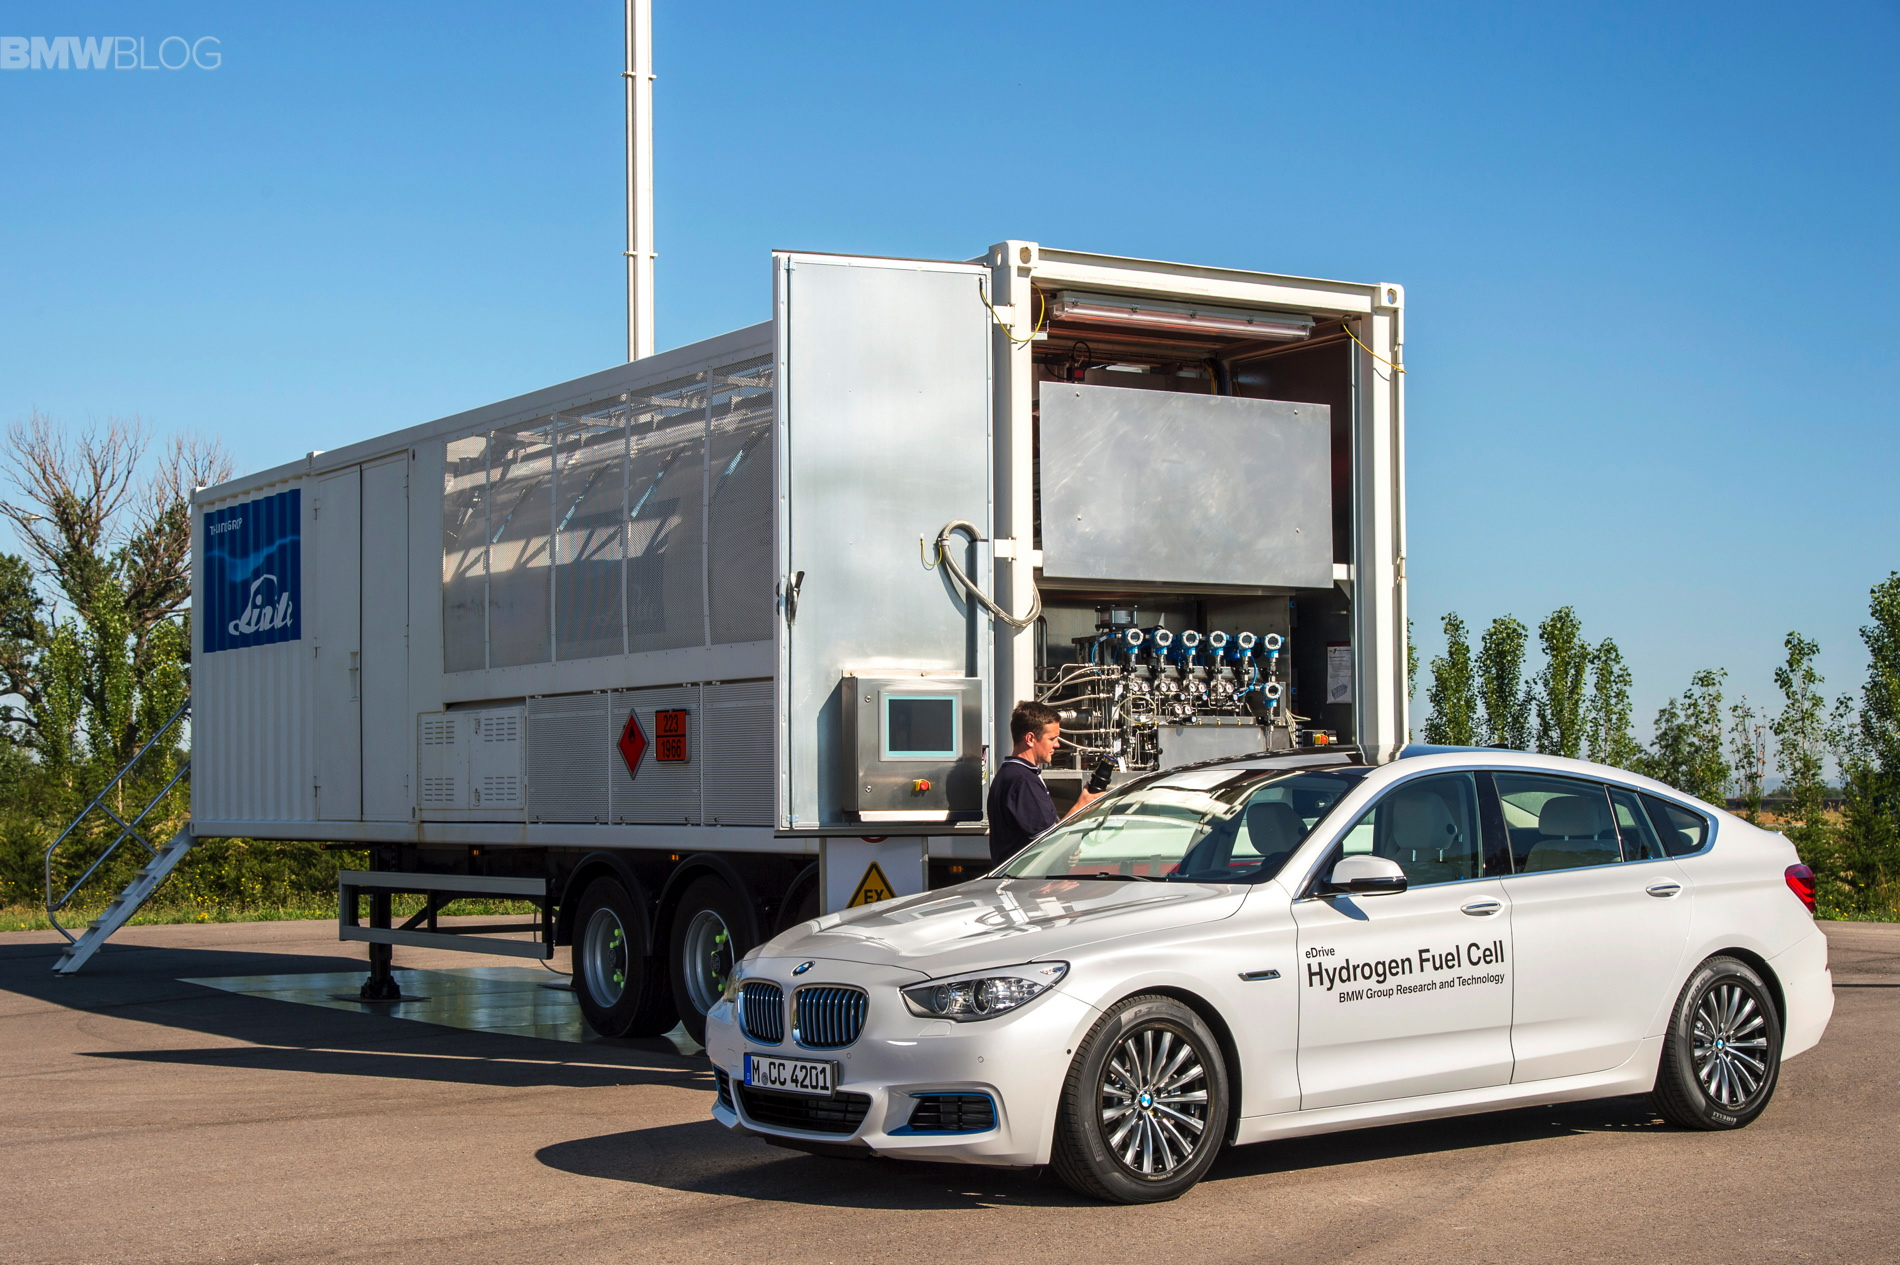 BMW 5 series gt hydrogen fuel cell images 27